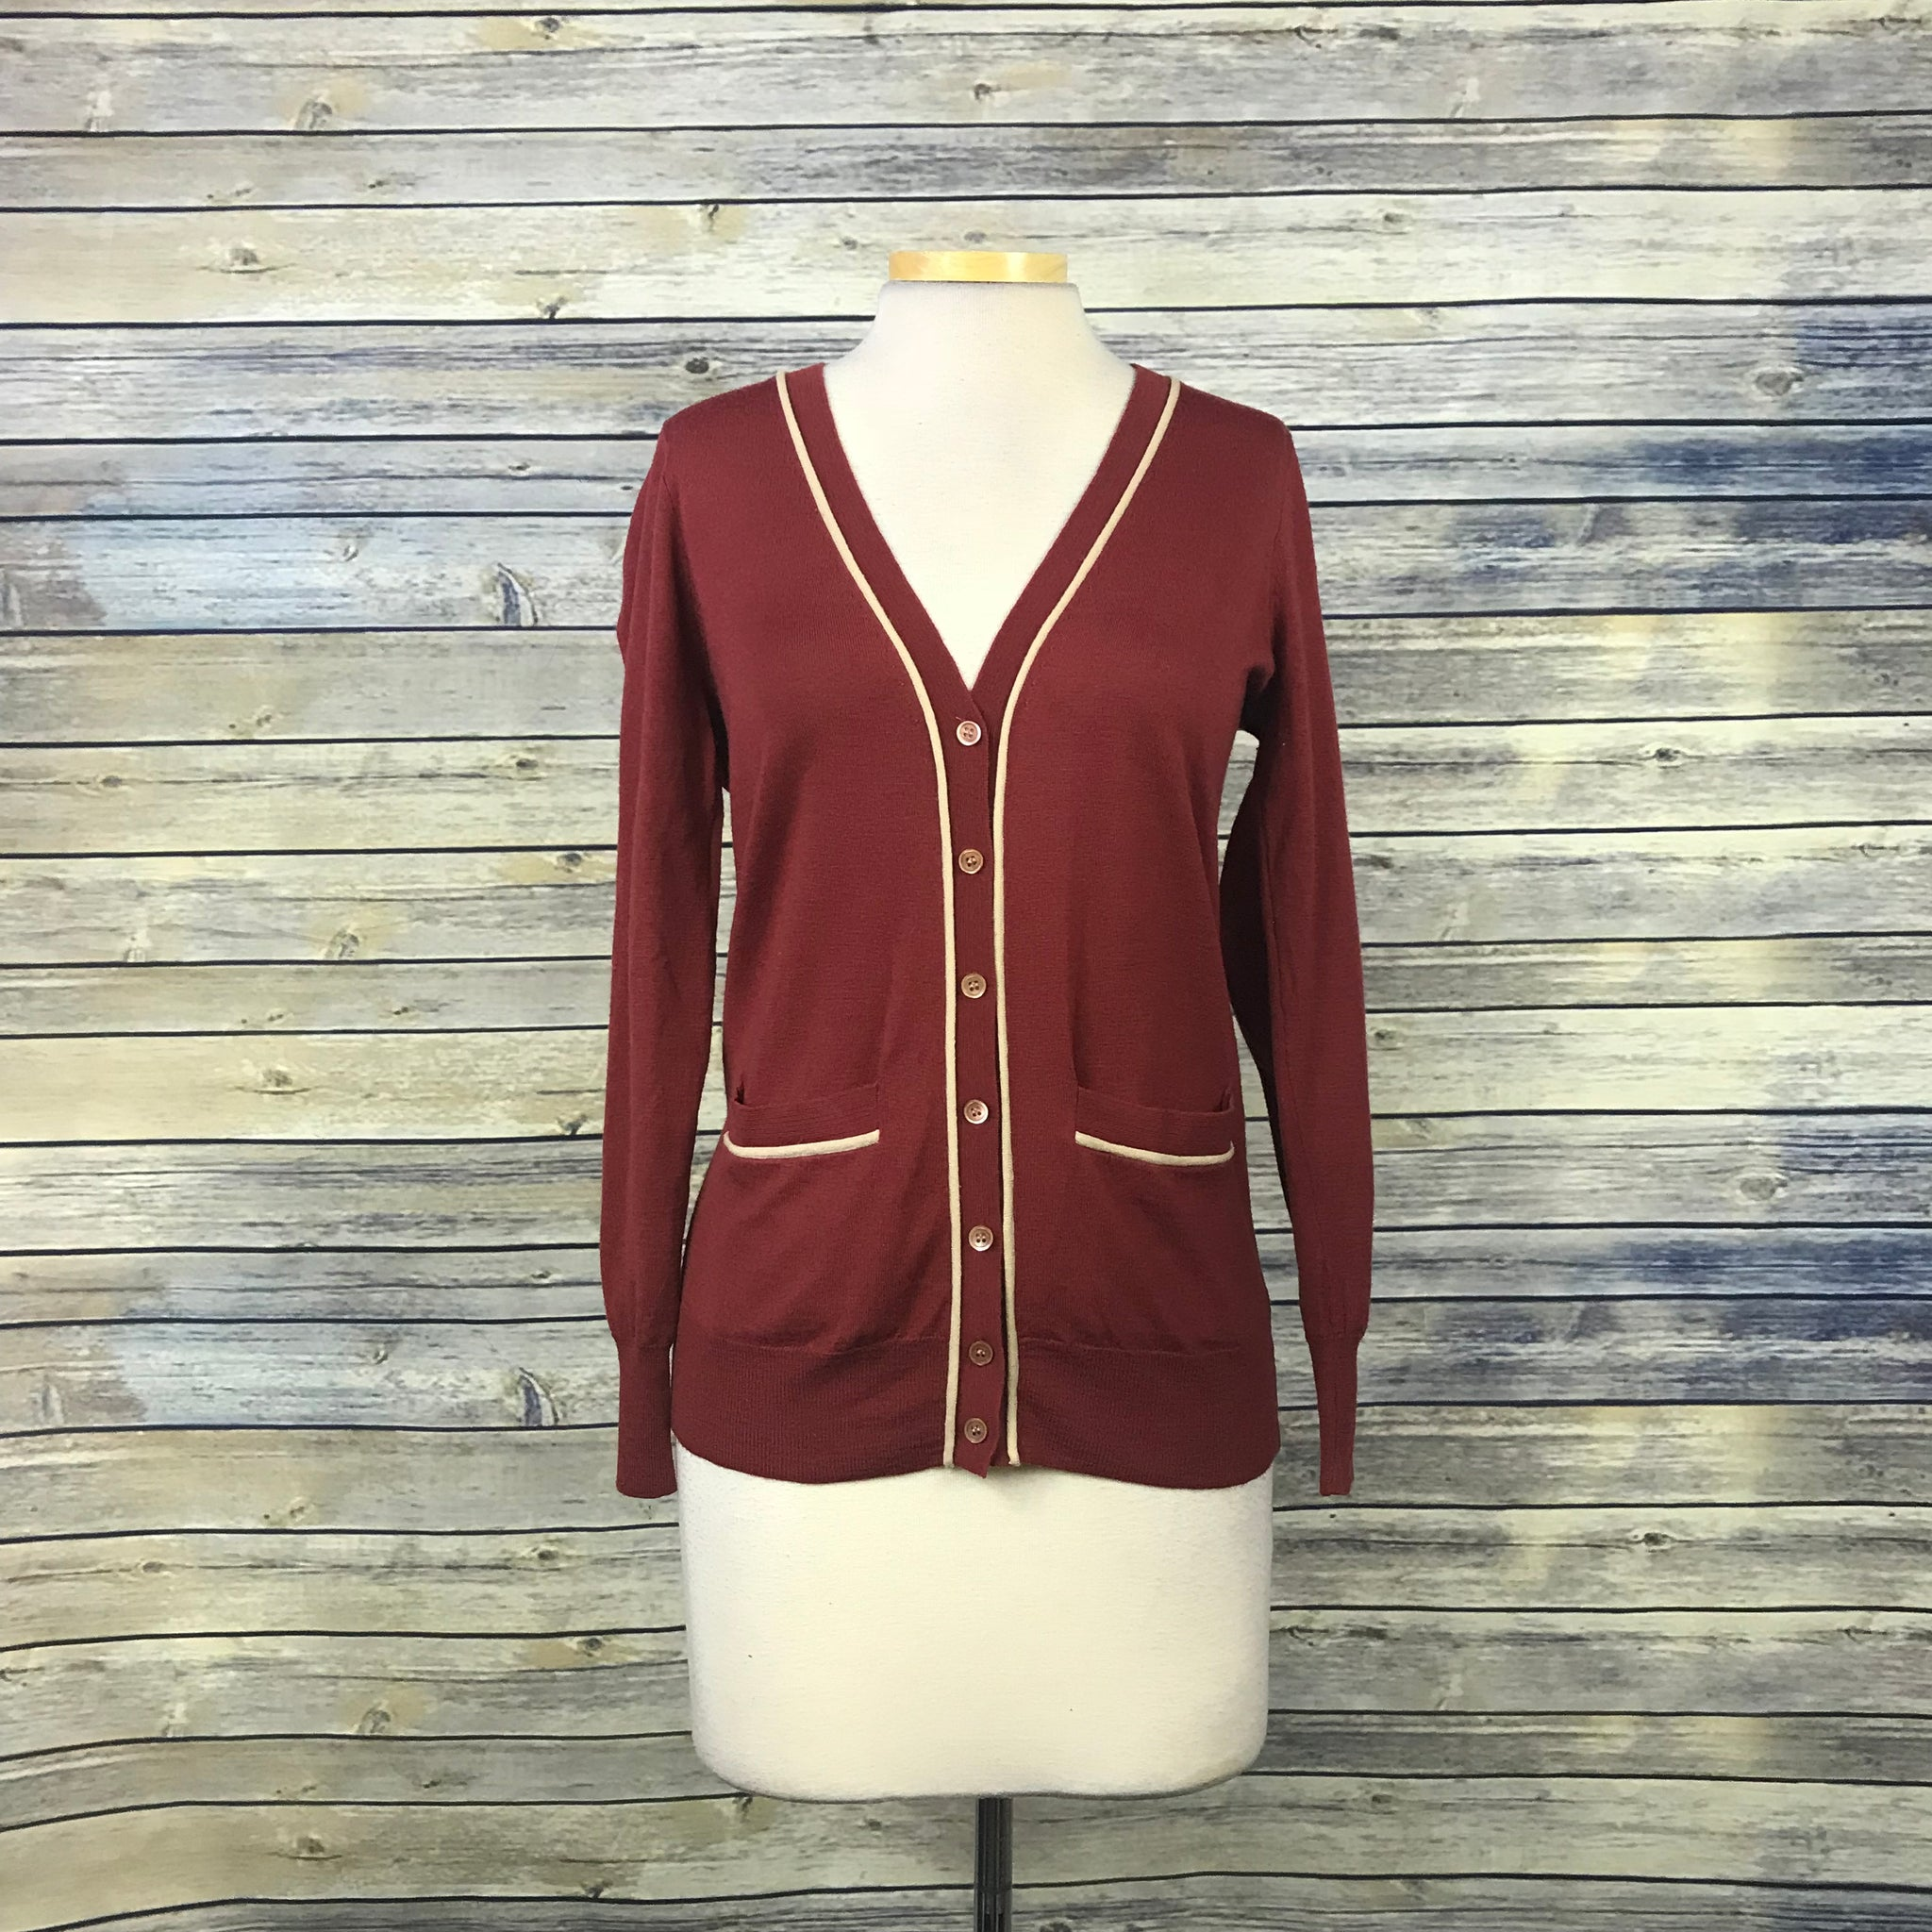 J Crew Womens Cardigan Burnt orange / red Size Small - Damaged MM10